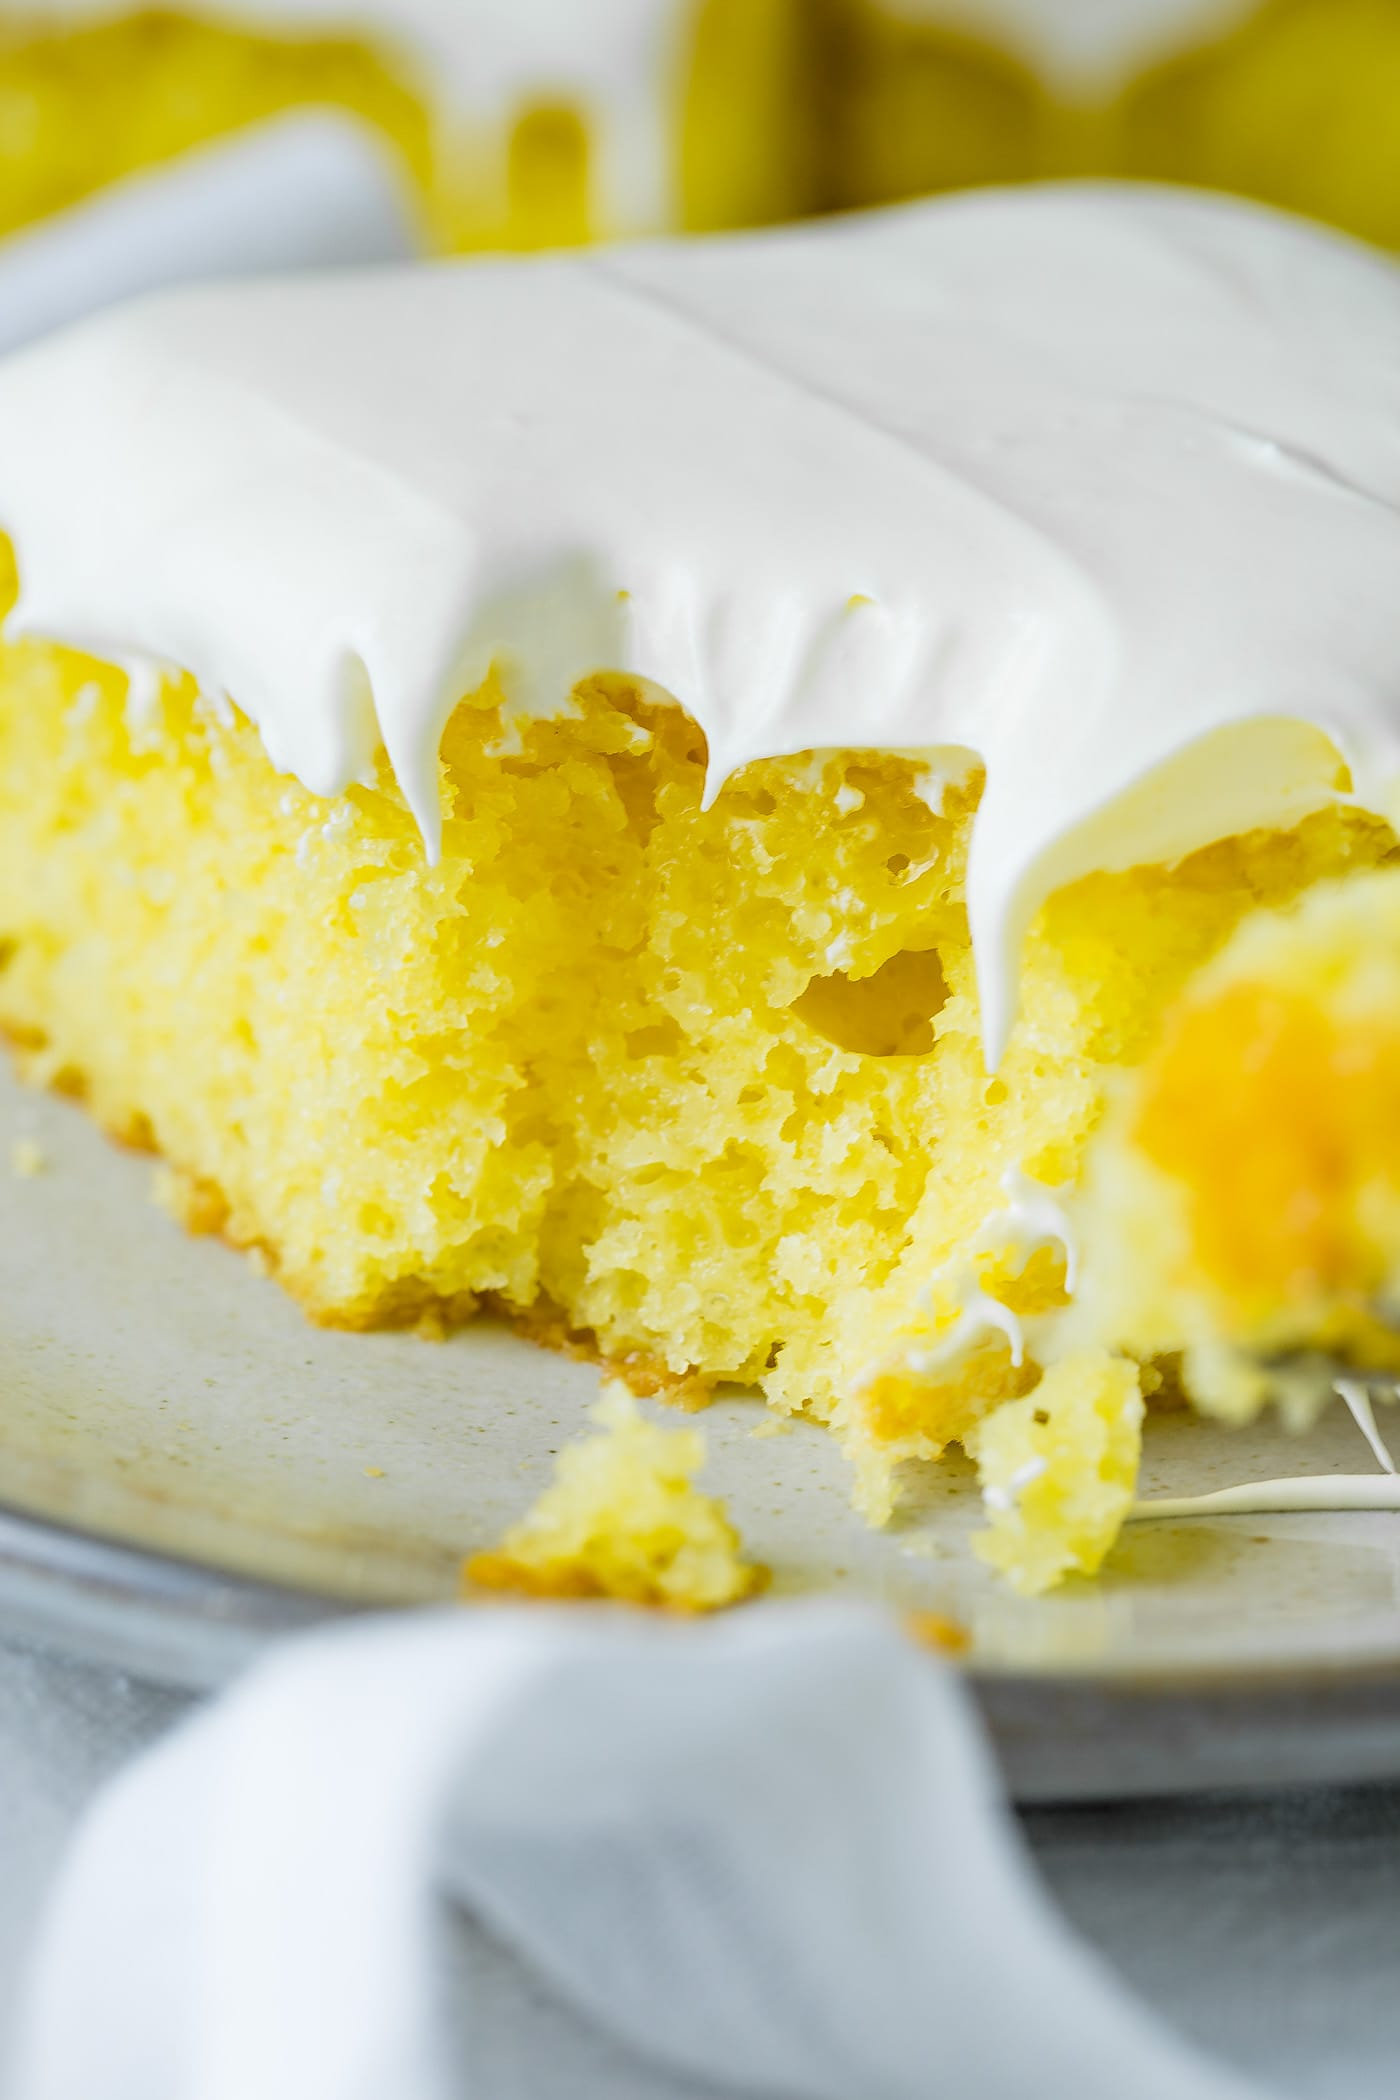 A slice of bright yellow lemon jello cake with fluffy white frosting on top. A bite has been taken from the corner of the cake.